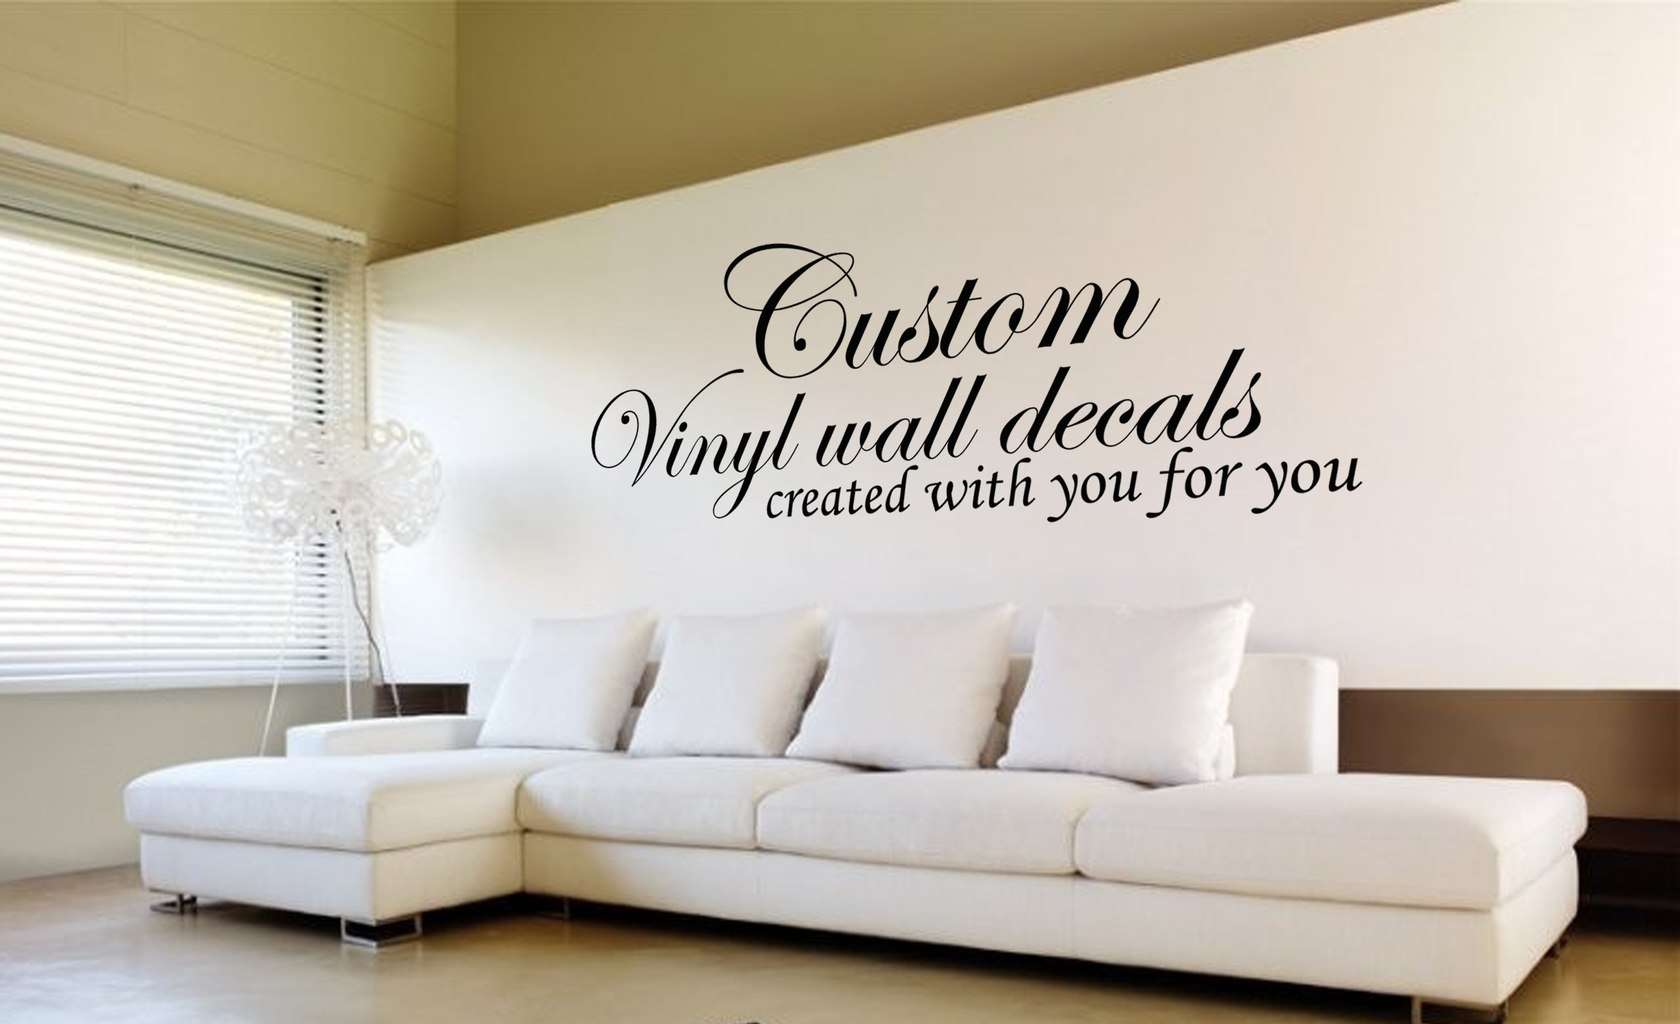 Amazing Design Your Own Quote Custom Wall Art Decals | Design Your Own Quote |  Custom Wall